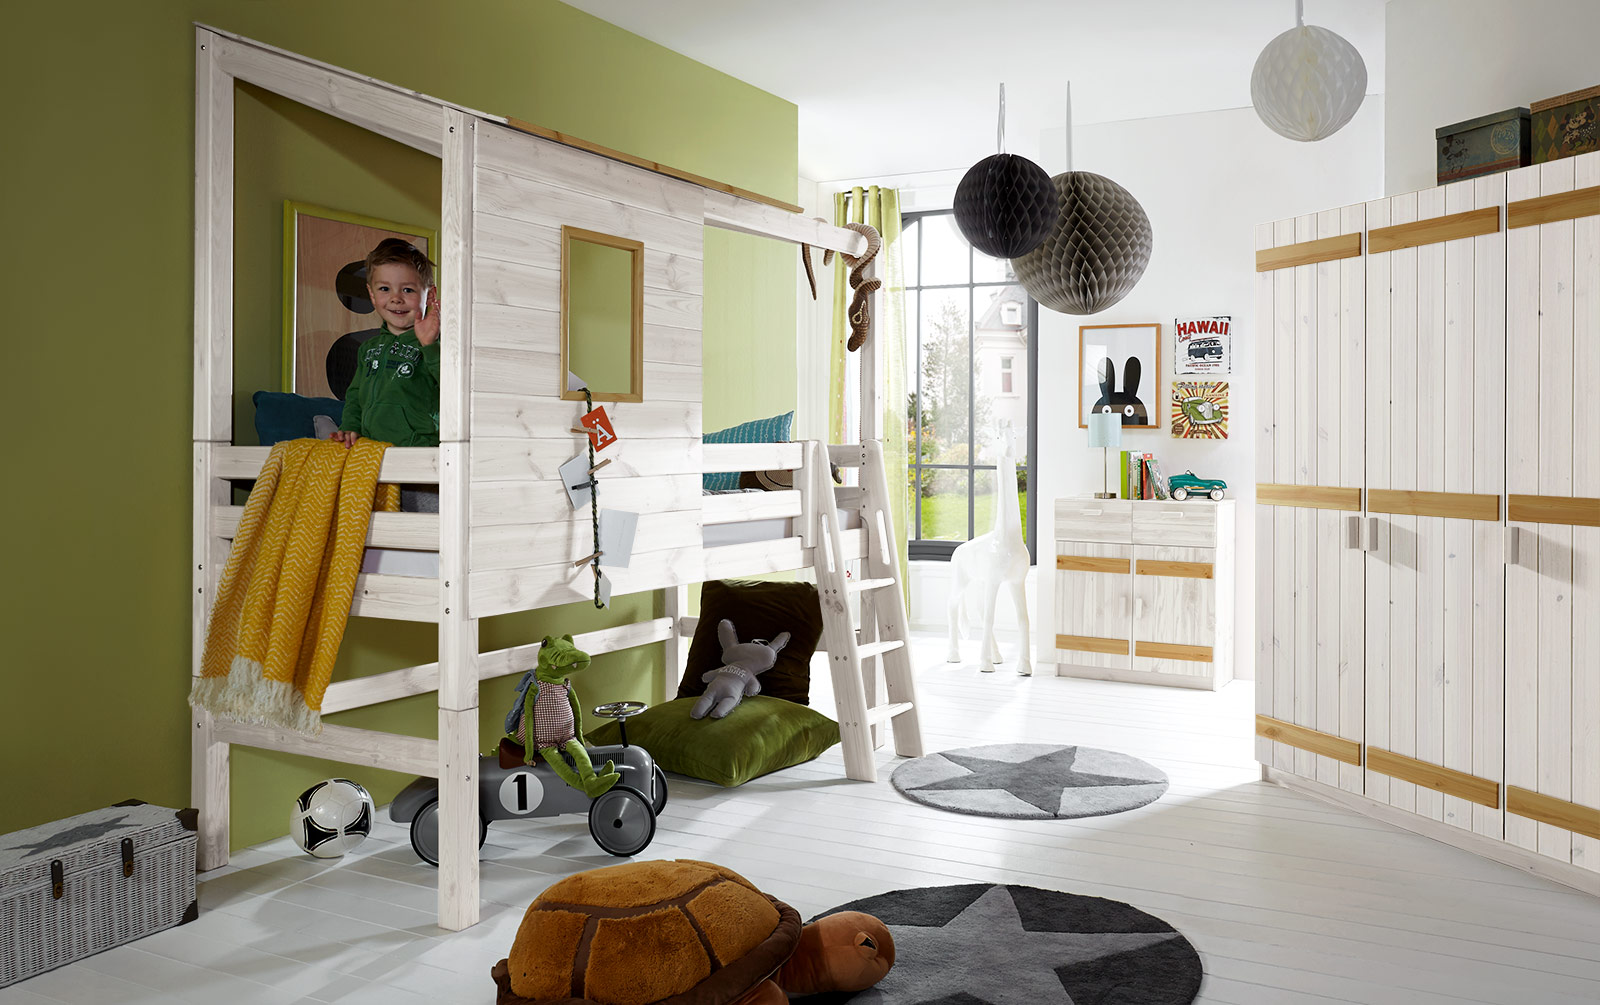 abenteuerbett als hochbett kids paradise f r ihr kinderzimmer. Black Bedroom Furniture Sets. Home Design Ideas